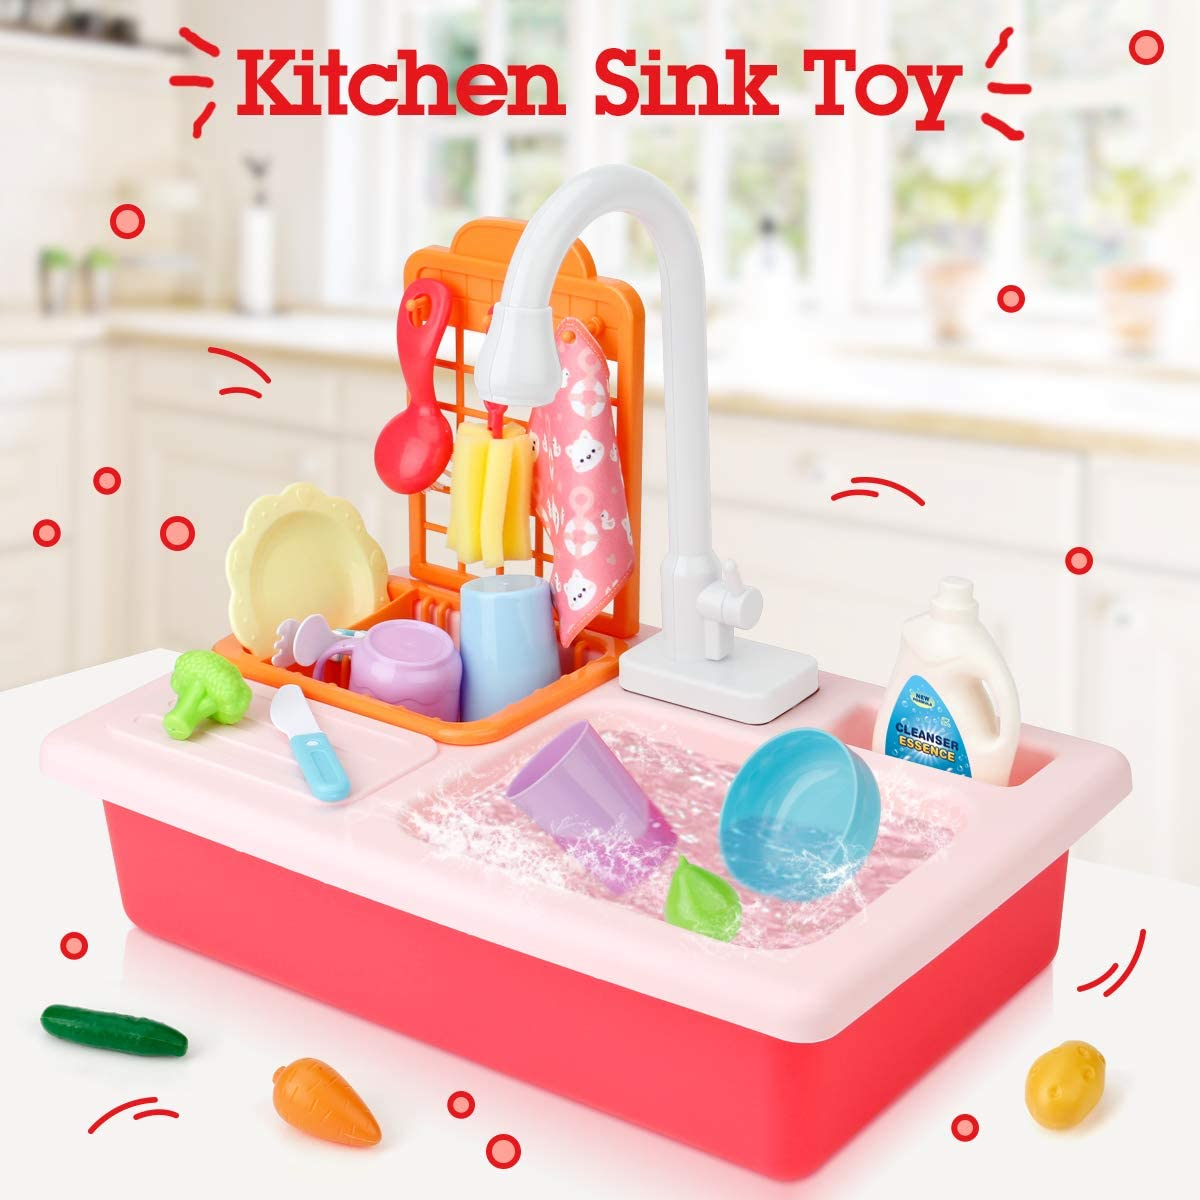 Elf Lab Kitchen Sink Toys Set,Electric Dishwasher Play Sink with Running Water,Kitchenwear Toys,Pretend Play House Toys Accessories,Kitchen Accessory Set for Toddlers Kids Boys and Girls(Pink)